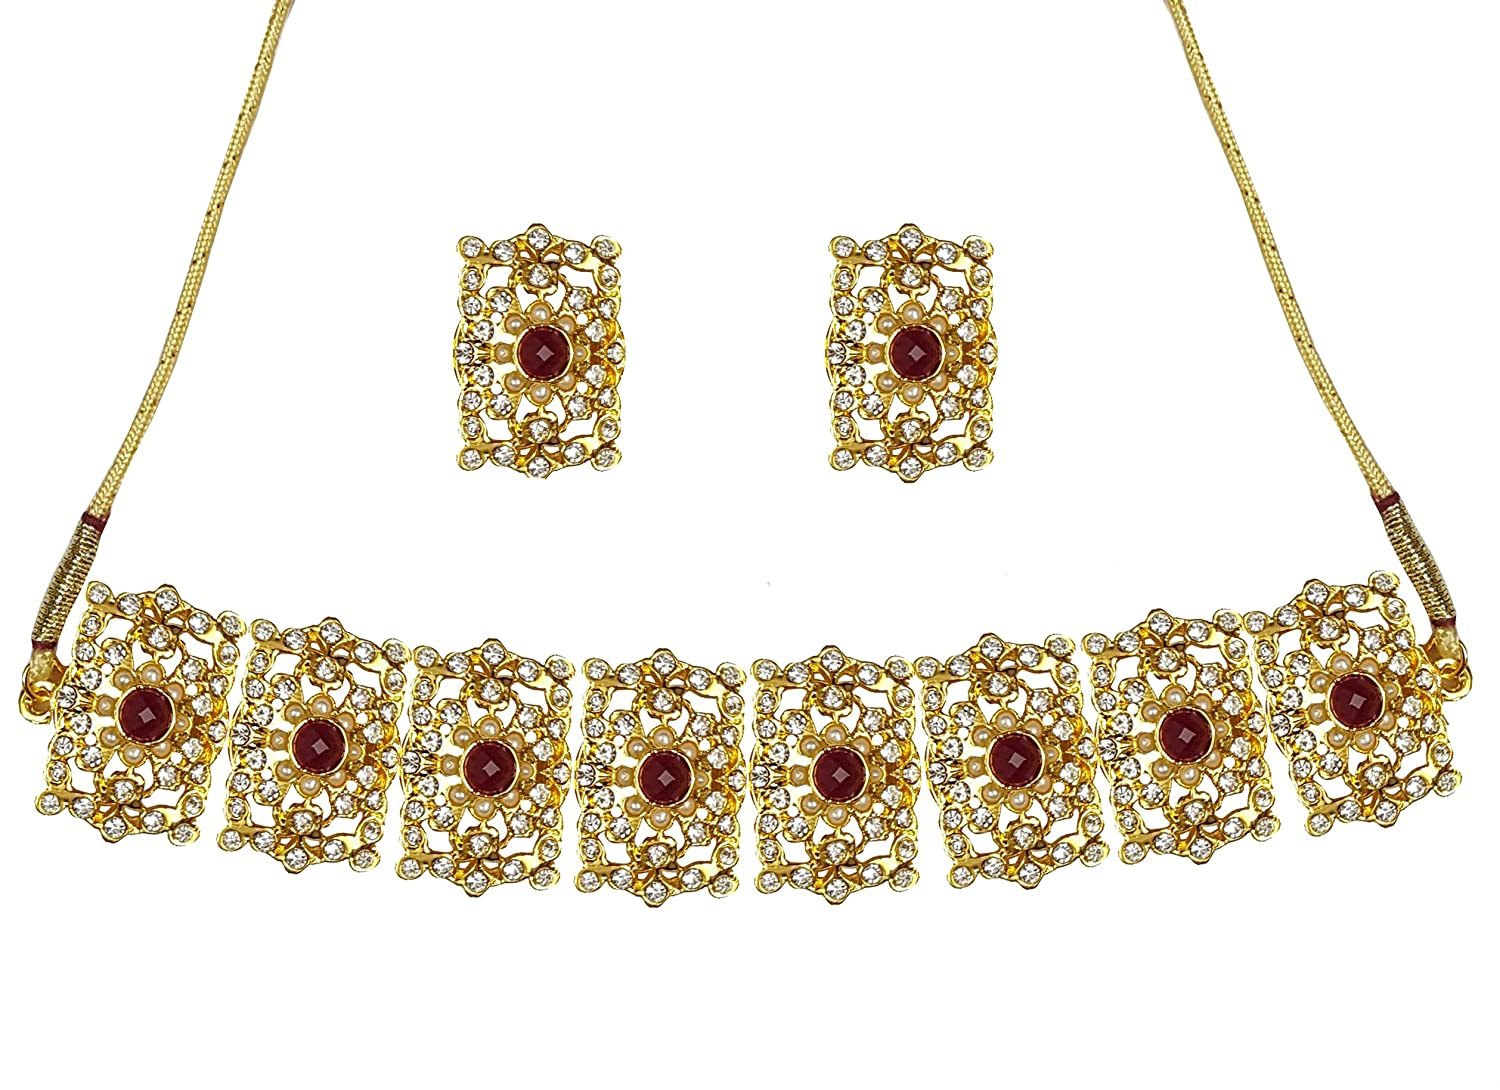 YouBella Golden Alloy Necklace Mughal Era Traditional